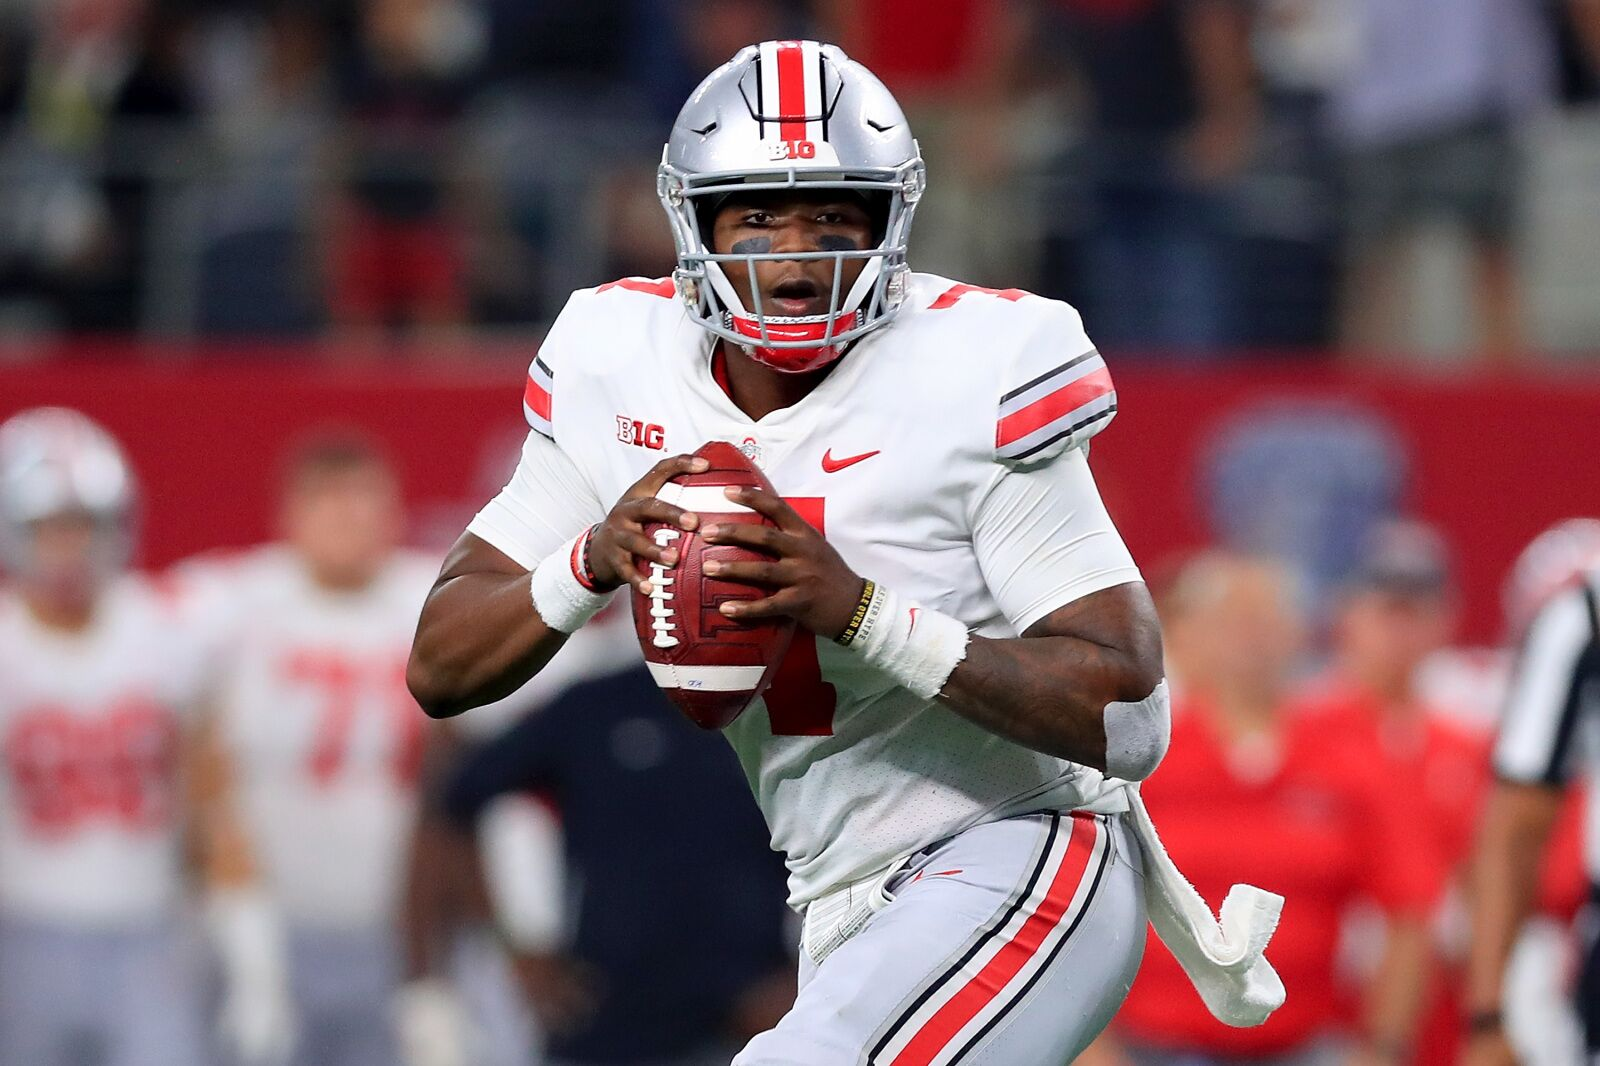 2019 Nfl Draft 5 Prospects To Watch In Week 11 Of College Football